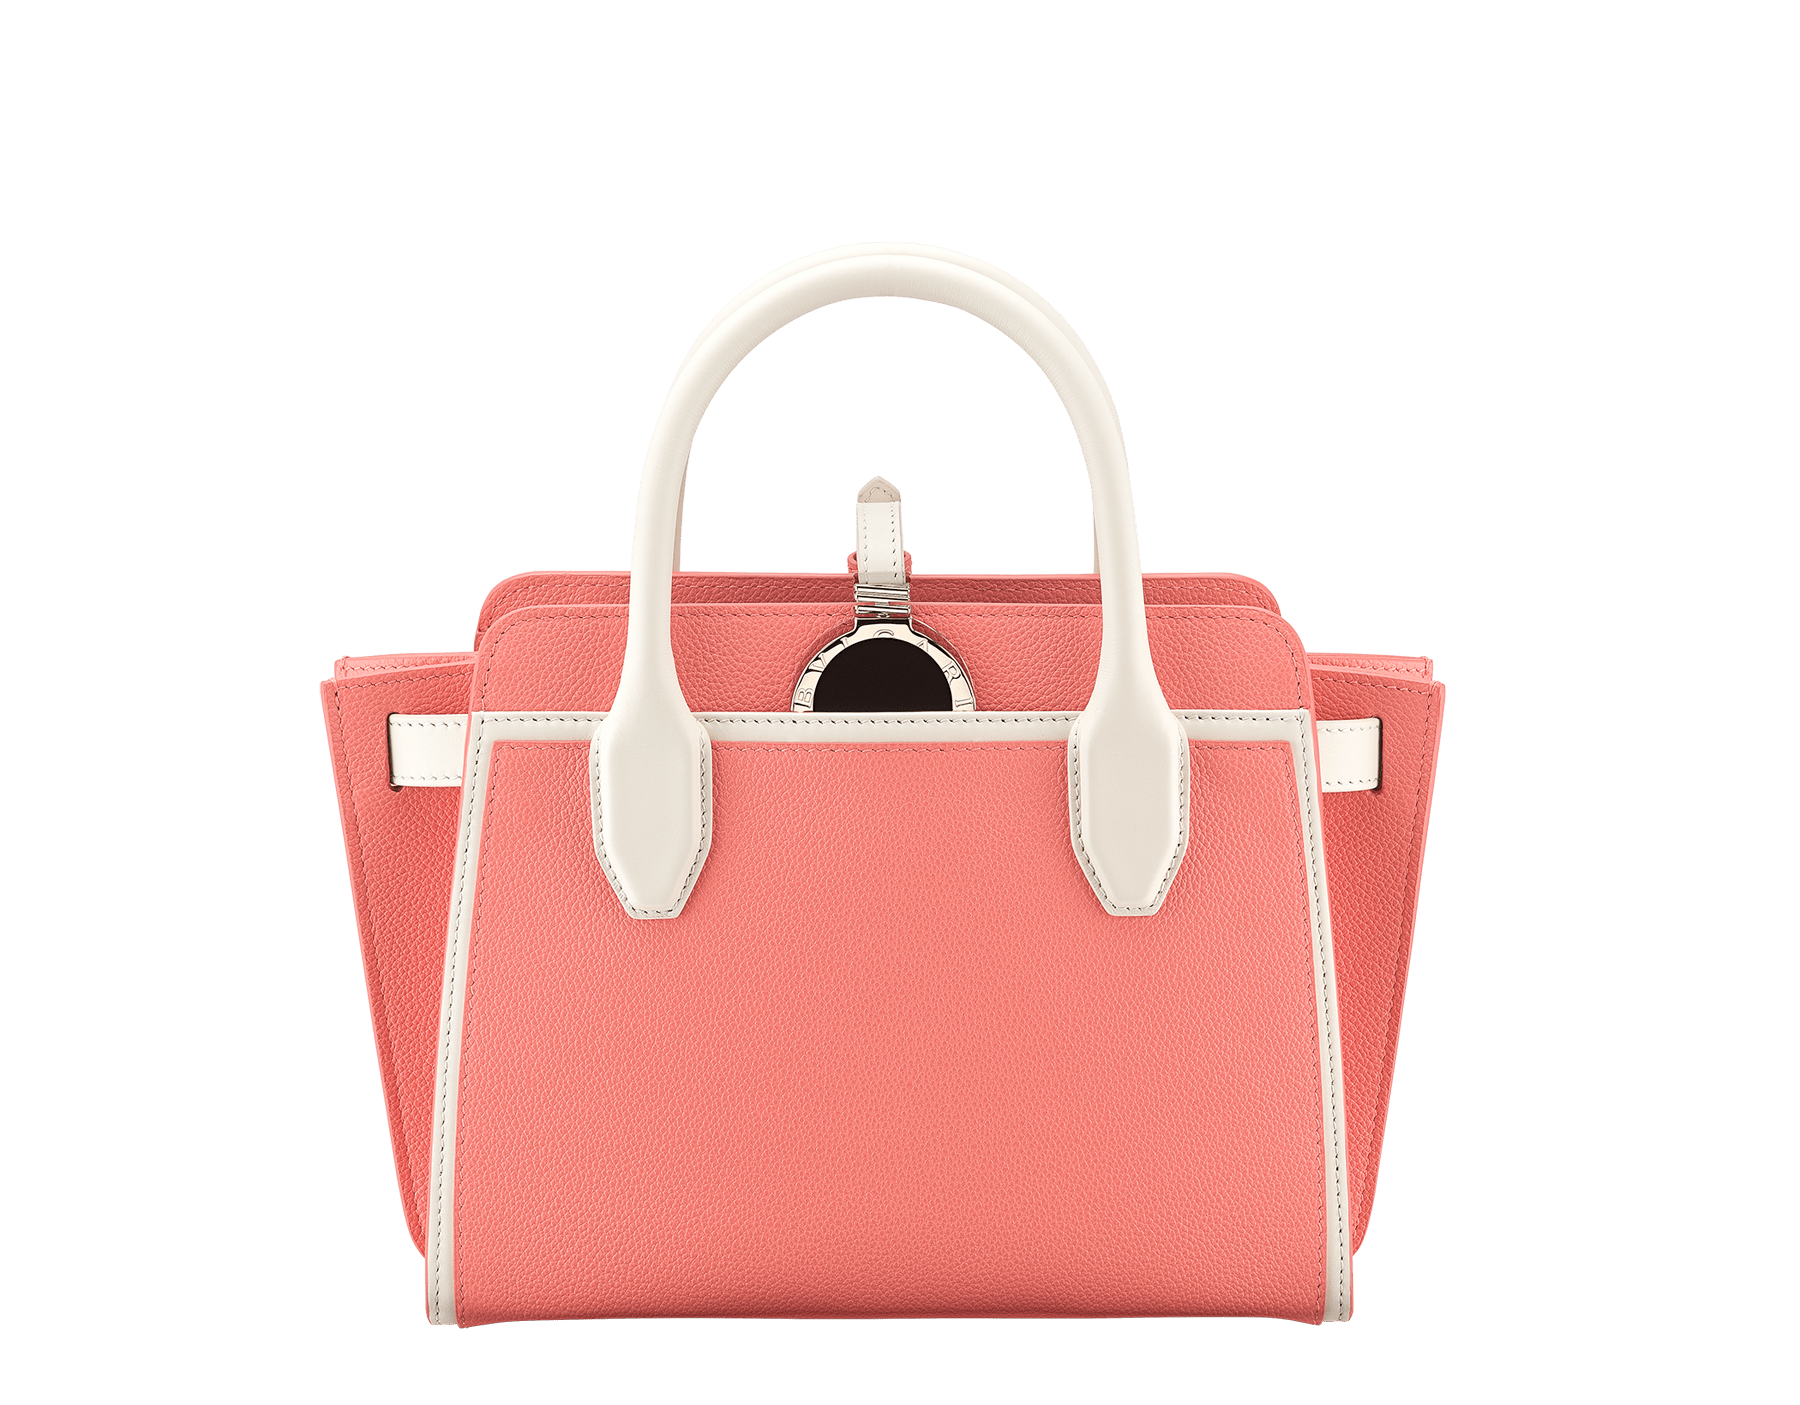 BVLGARI BVLGARI Alba tote bag in silky coral framed calf leather and white agate smooth calf leather, with zip closure. Pendant in light gold plated brass metal set with black enamel on the front and leather on the back side, featuring the double logo and a Tubogas decoration. 289334 image 1